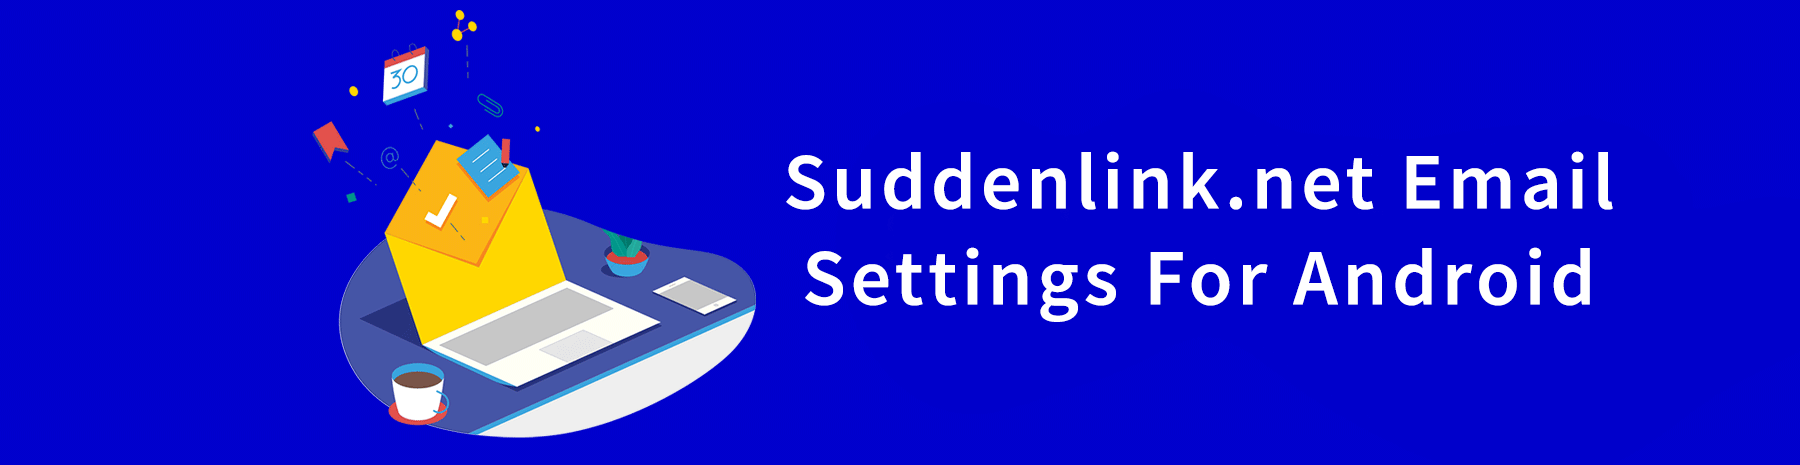 Suddenlink.net Email Settings Android